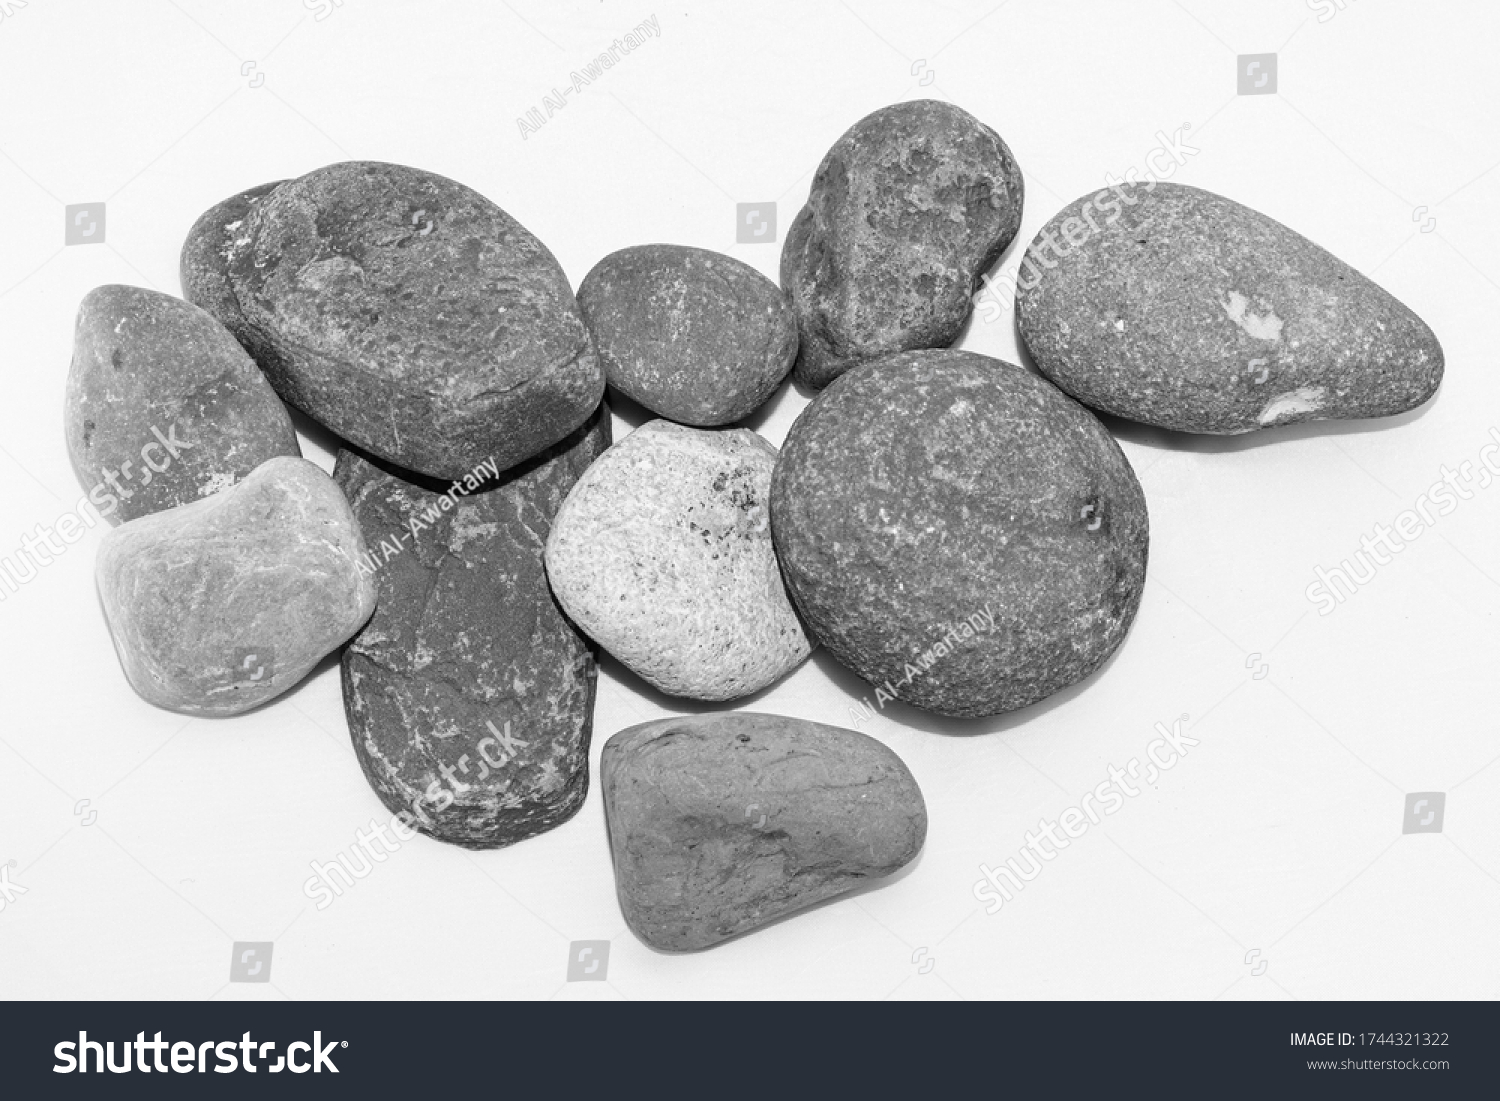 stock-photo-scattered-sea-pebbles-smooth